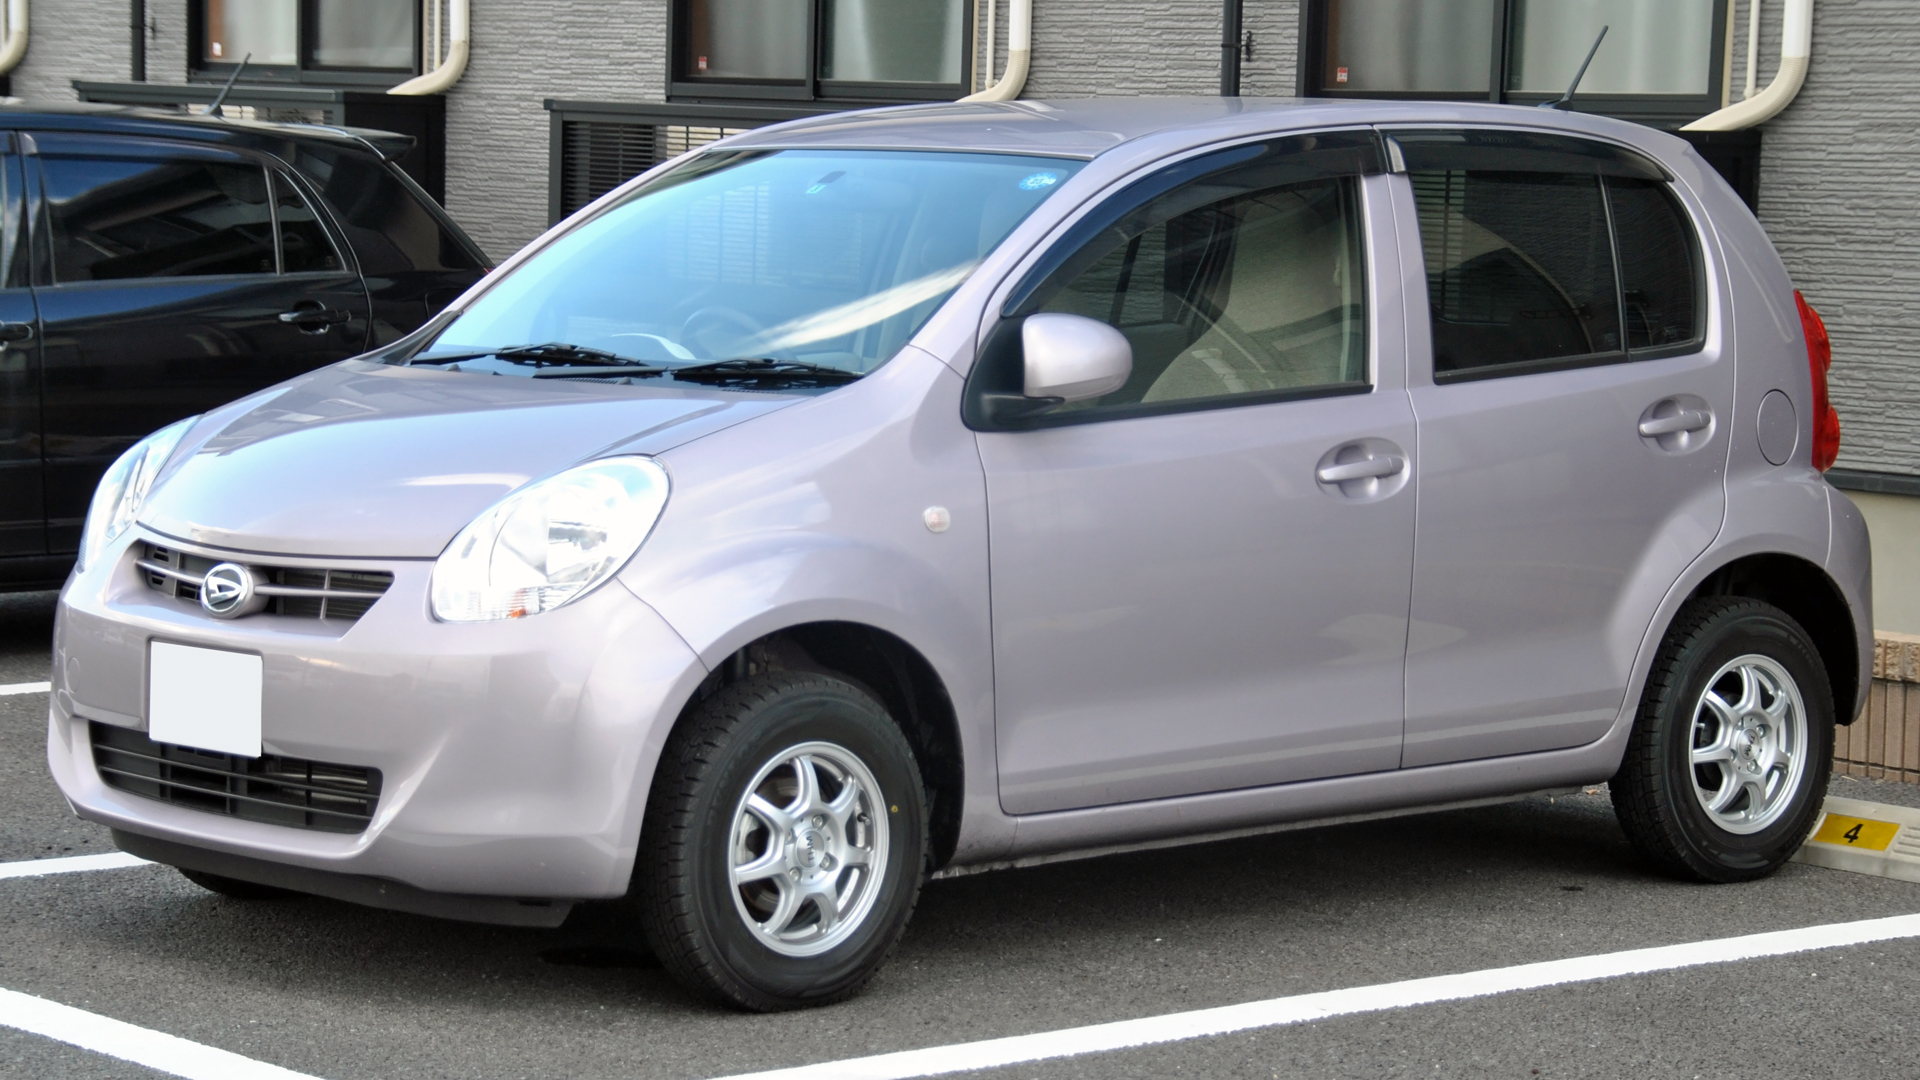 Daihatsu HD Wallpaper